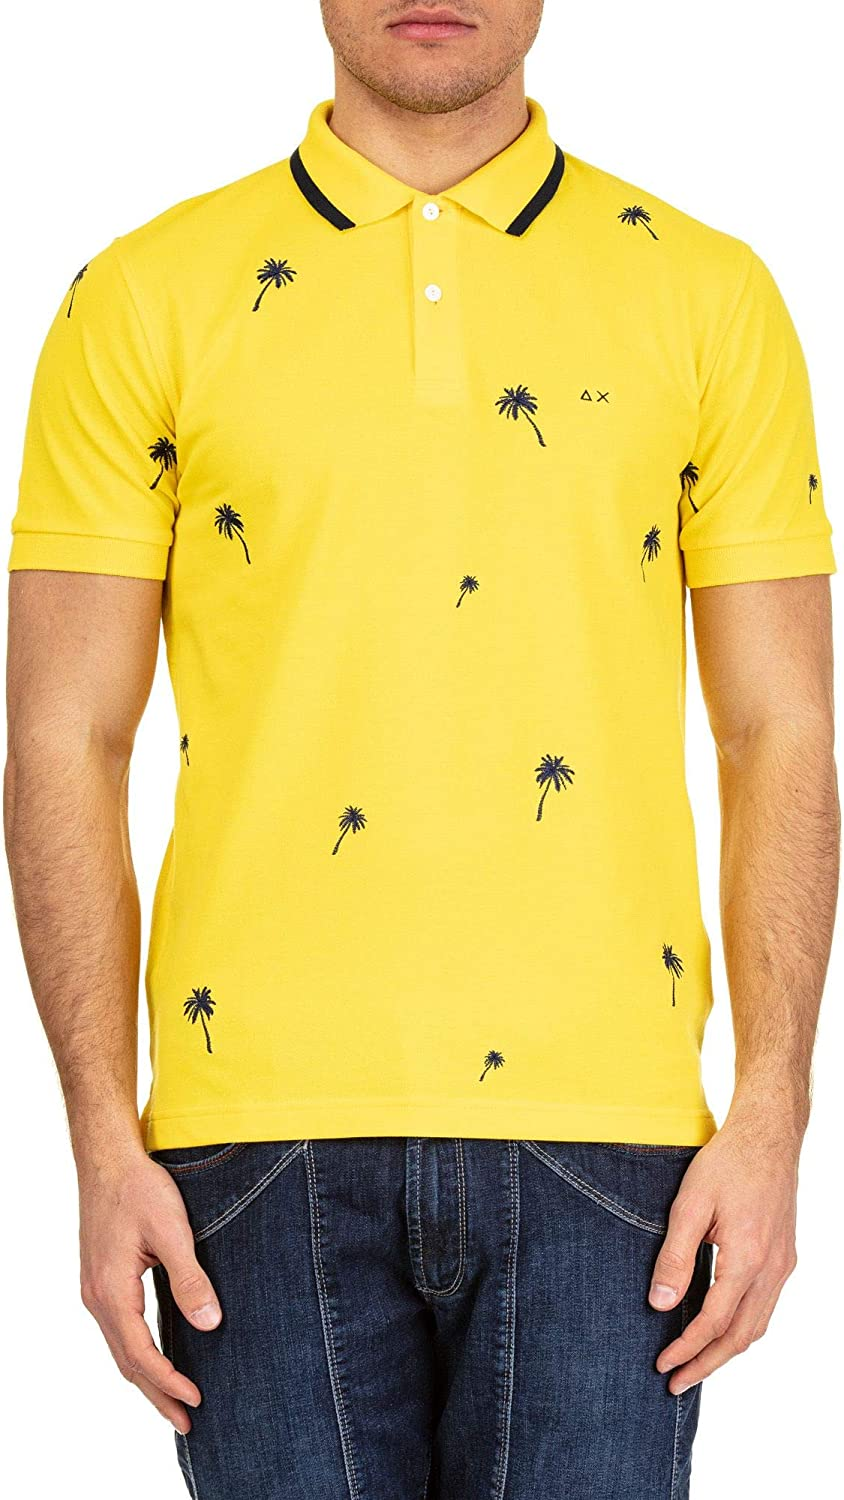 SUN 68 Men's A1912223 Yellow Cotton Polo Shirt